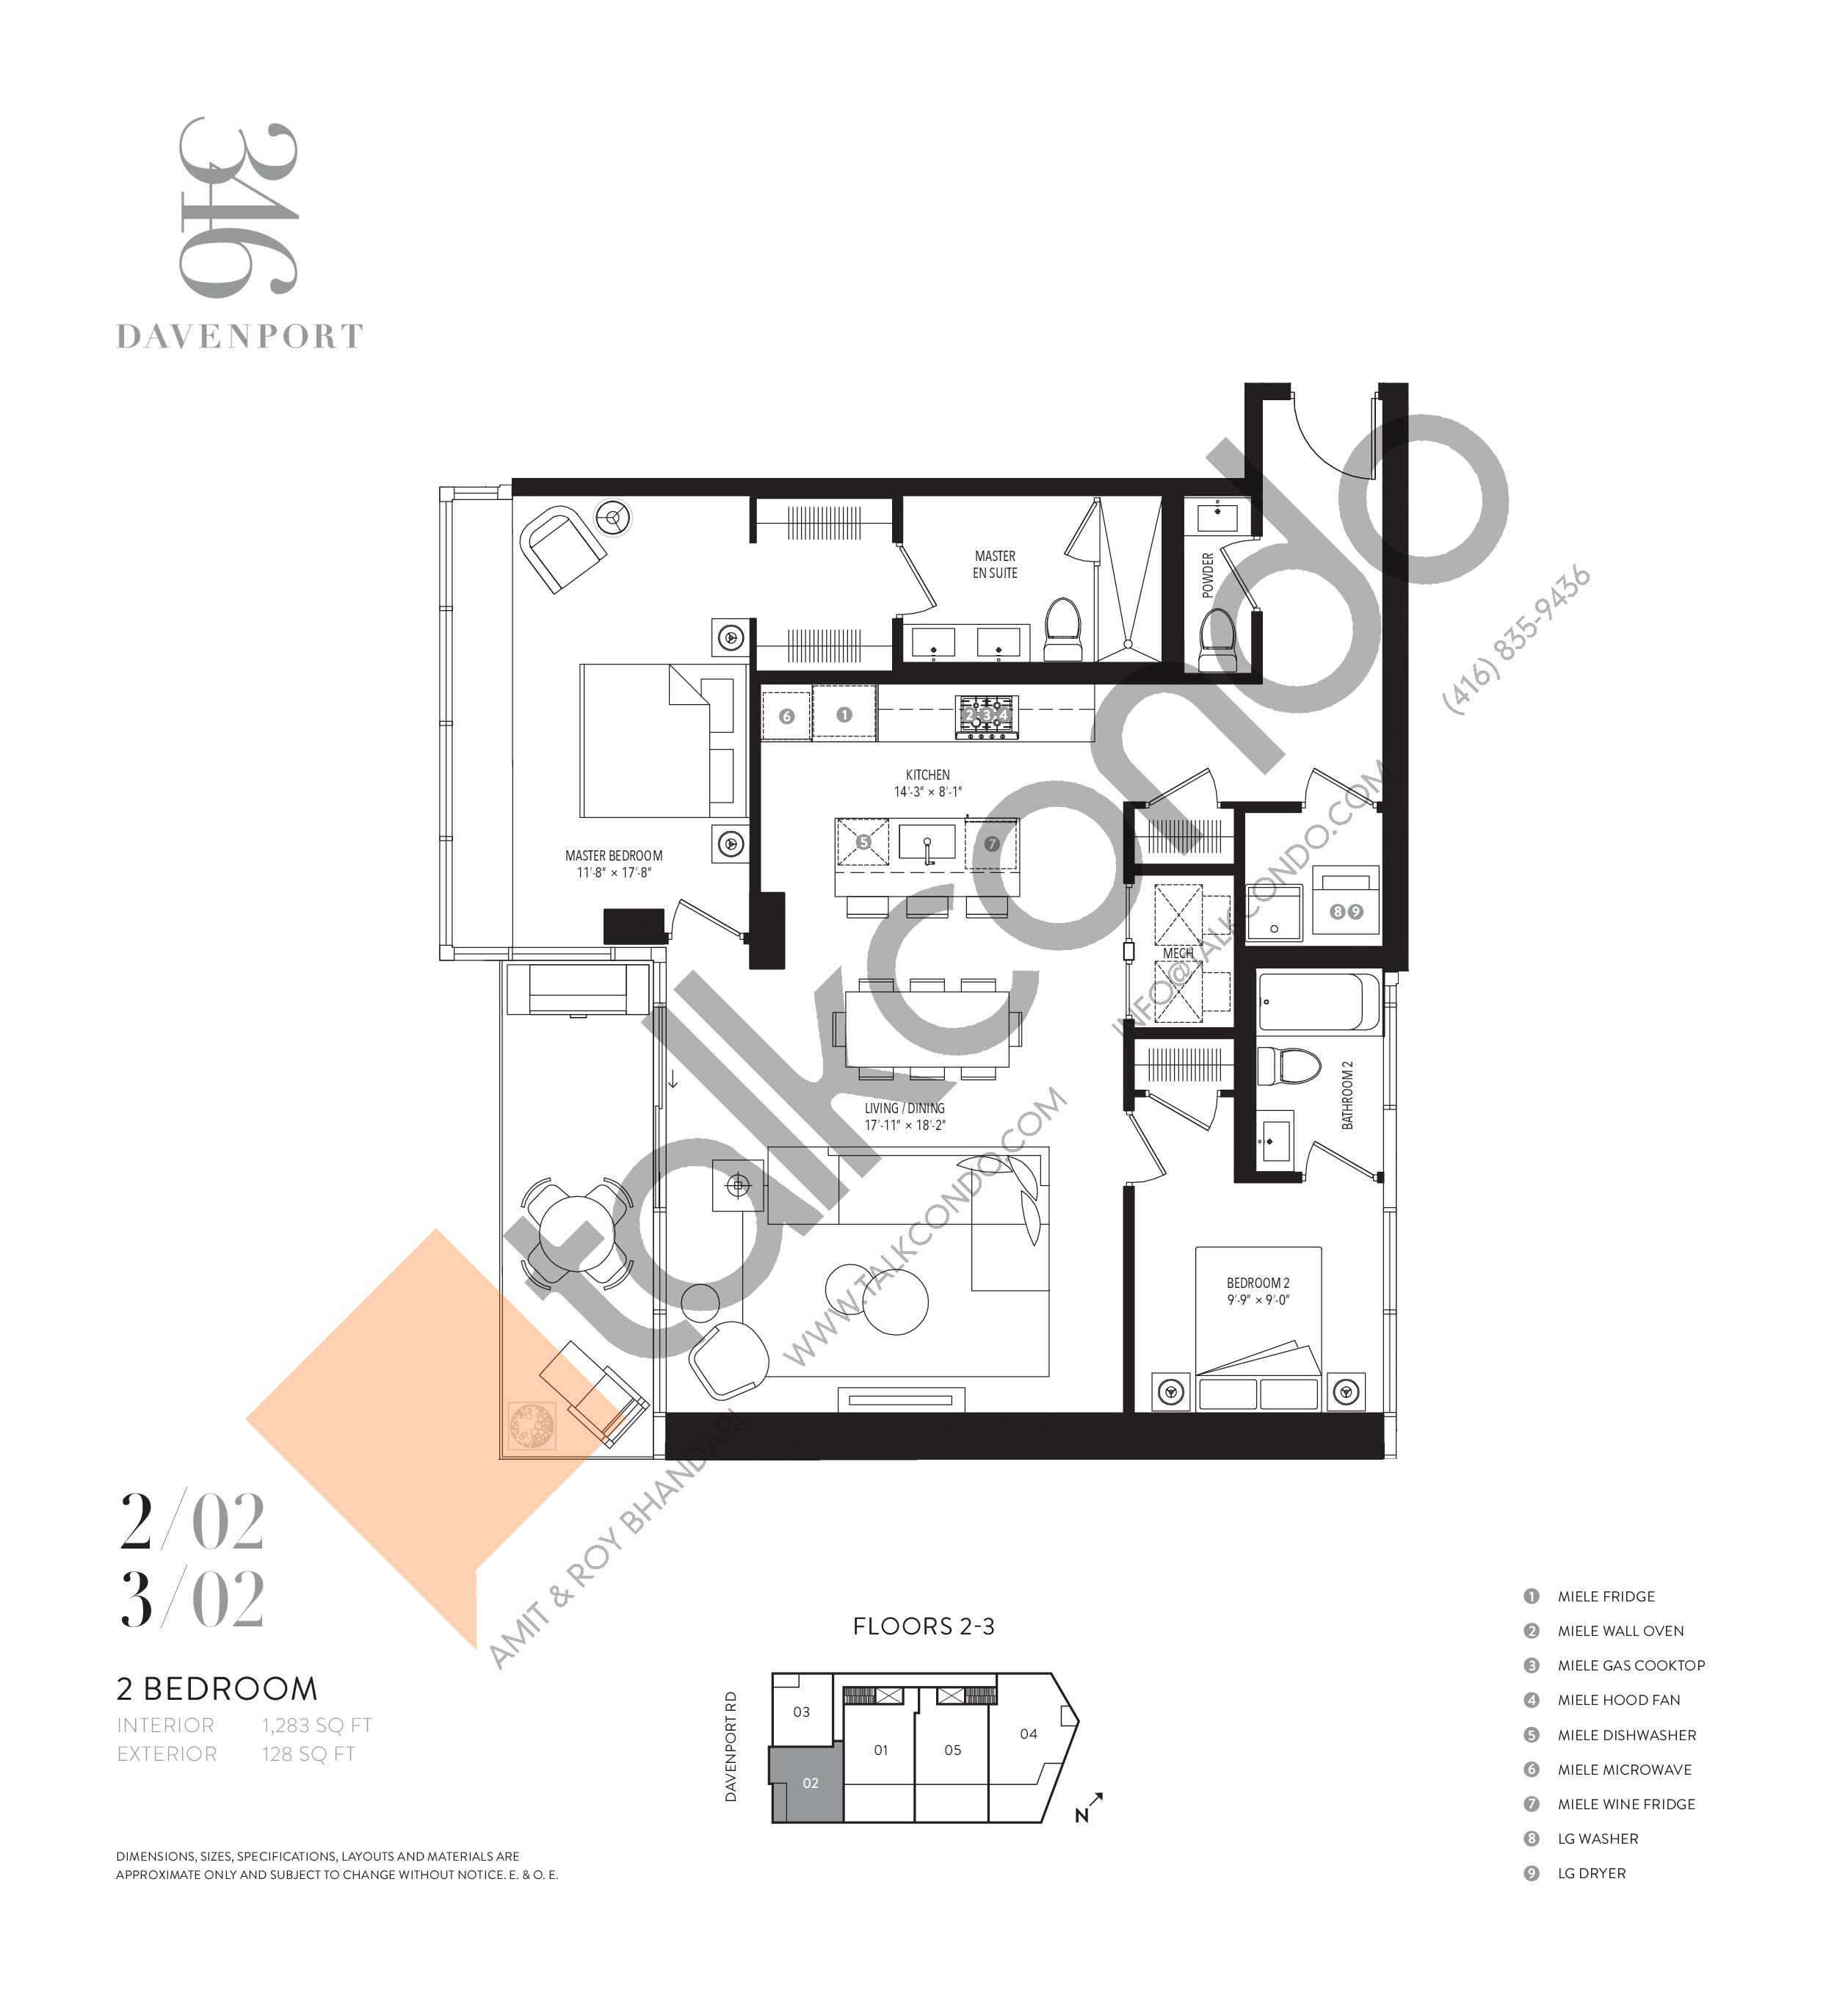 202 Floor Plan at 346 Davenport Condos - 1283 sq.ft